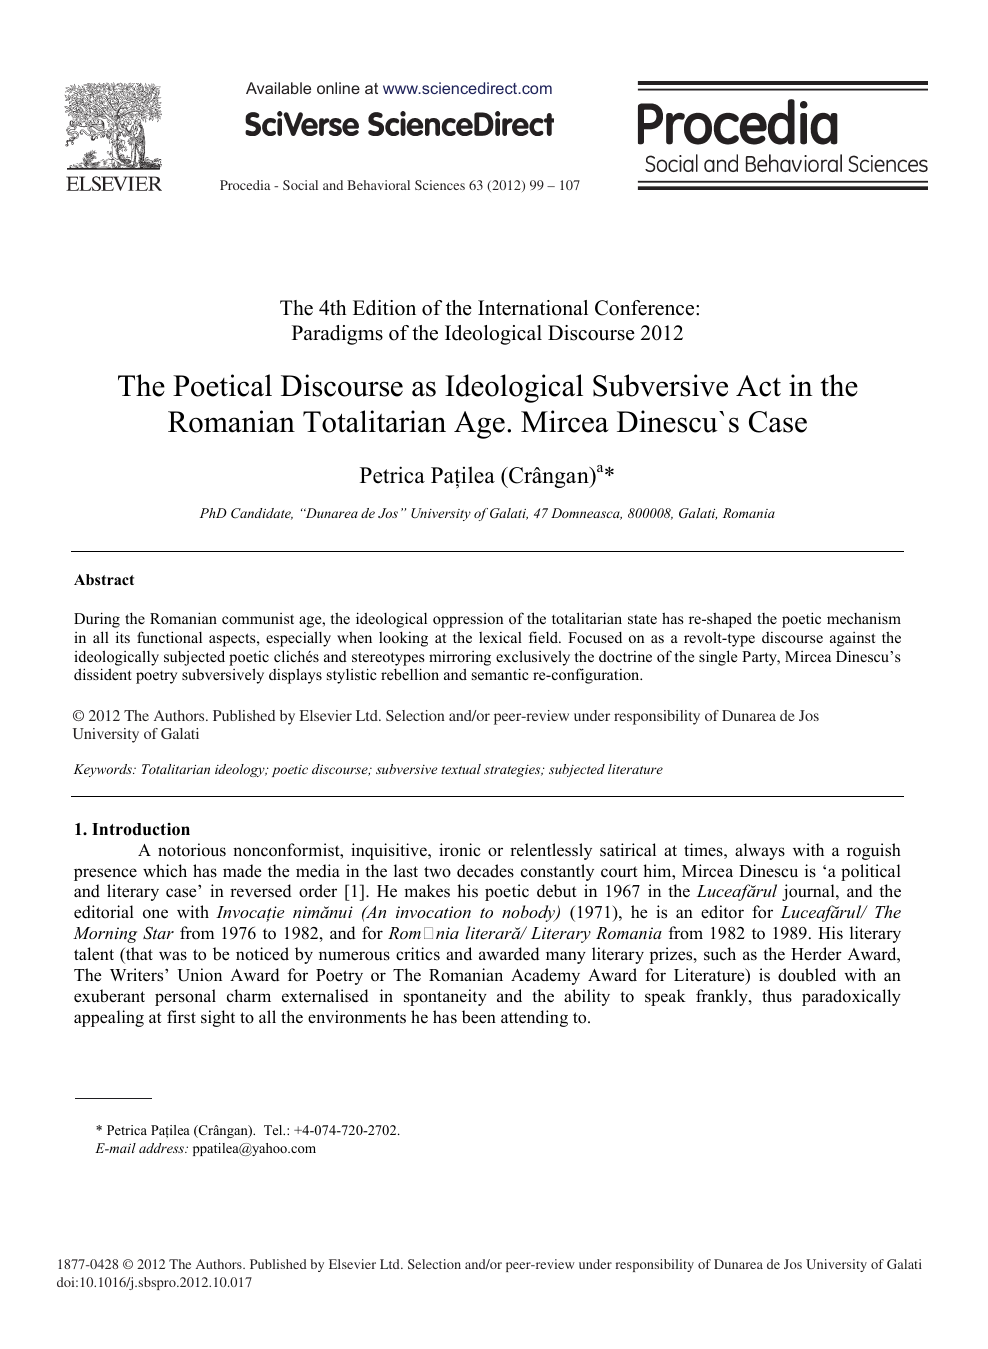 The Poetical Discourse as Ideological Subversive Act in the